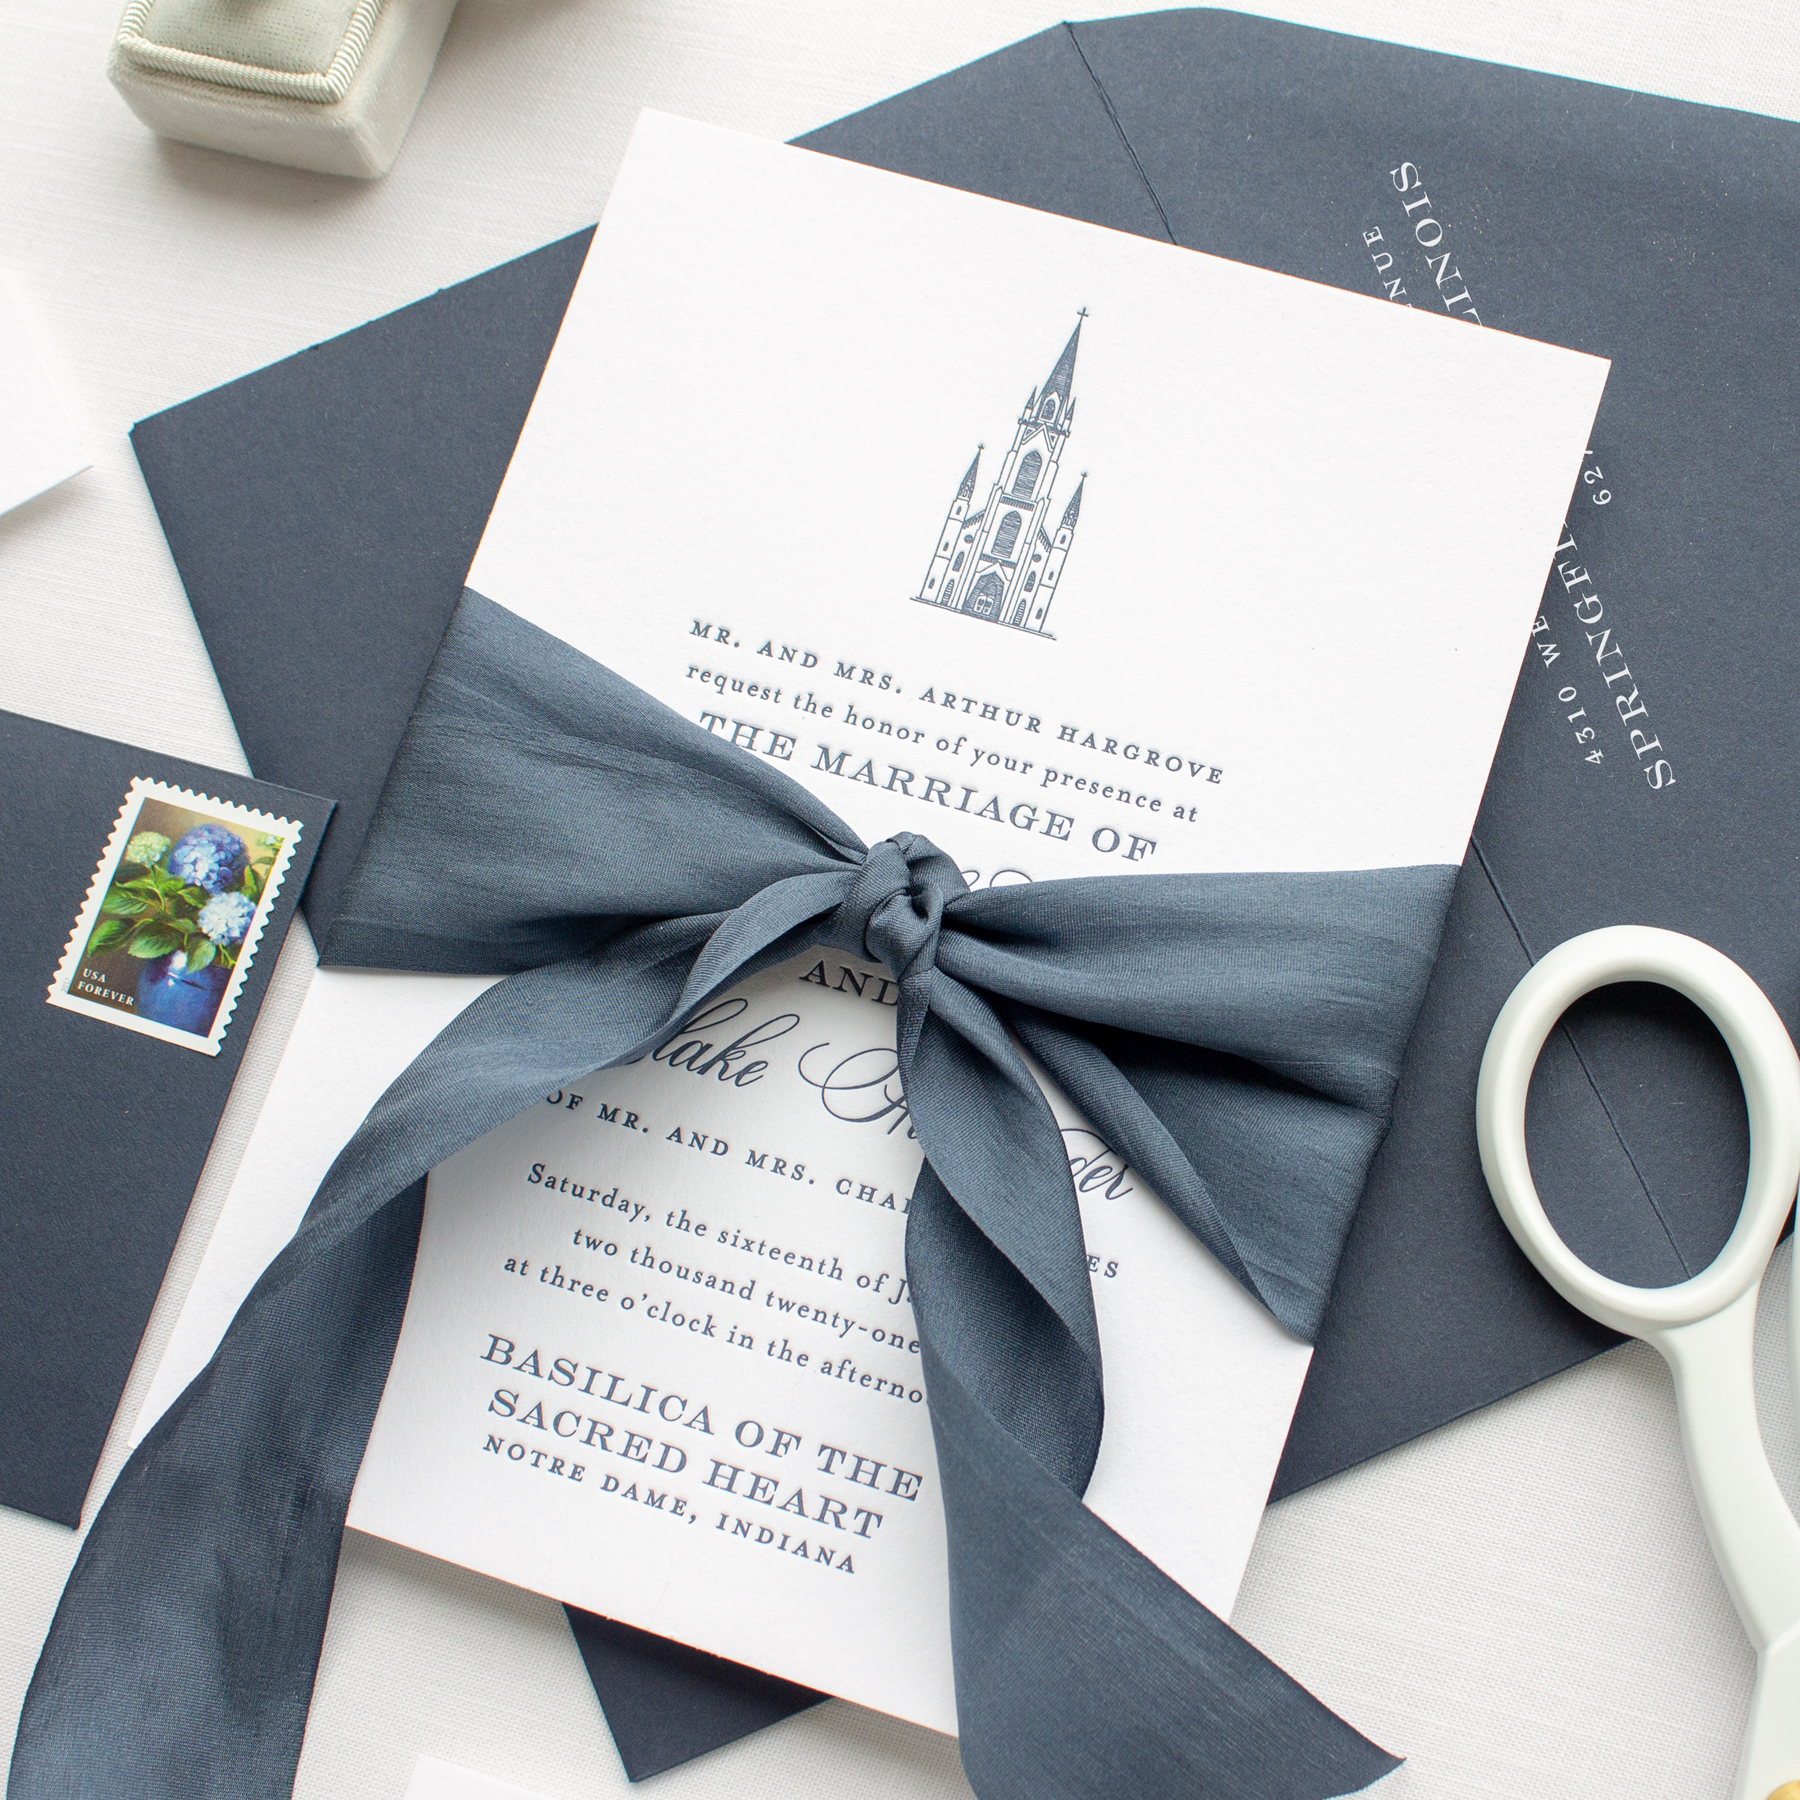 custom invitations for basilica wedding at notre dame